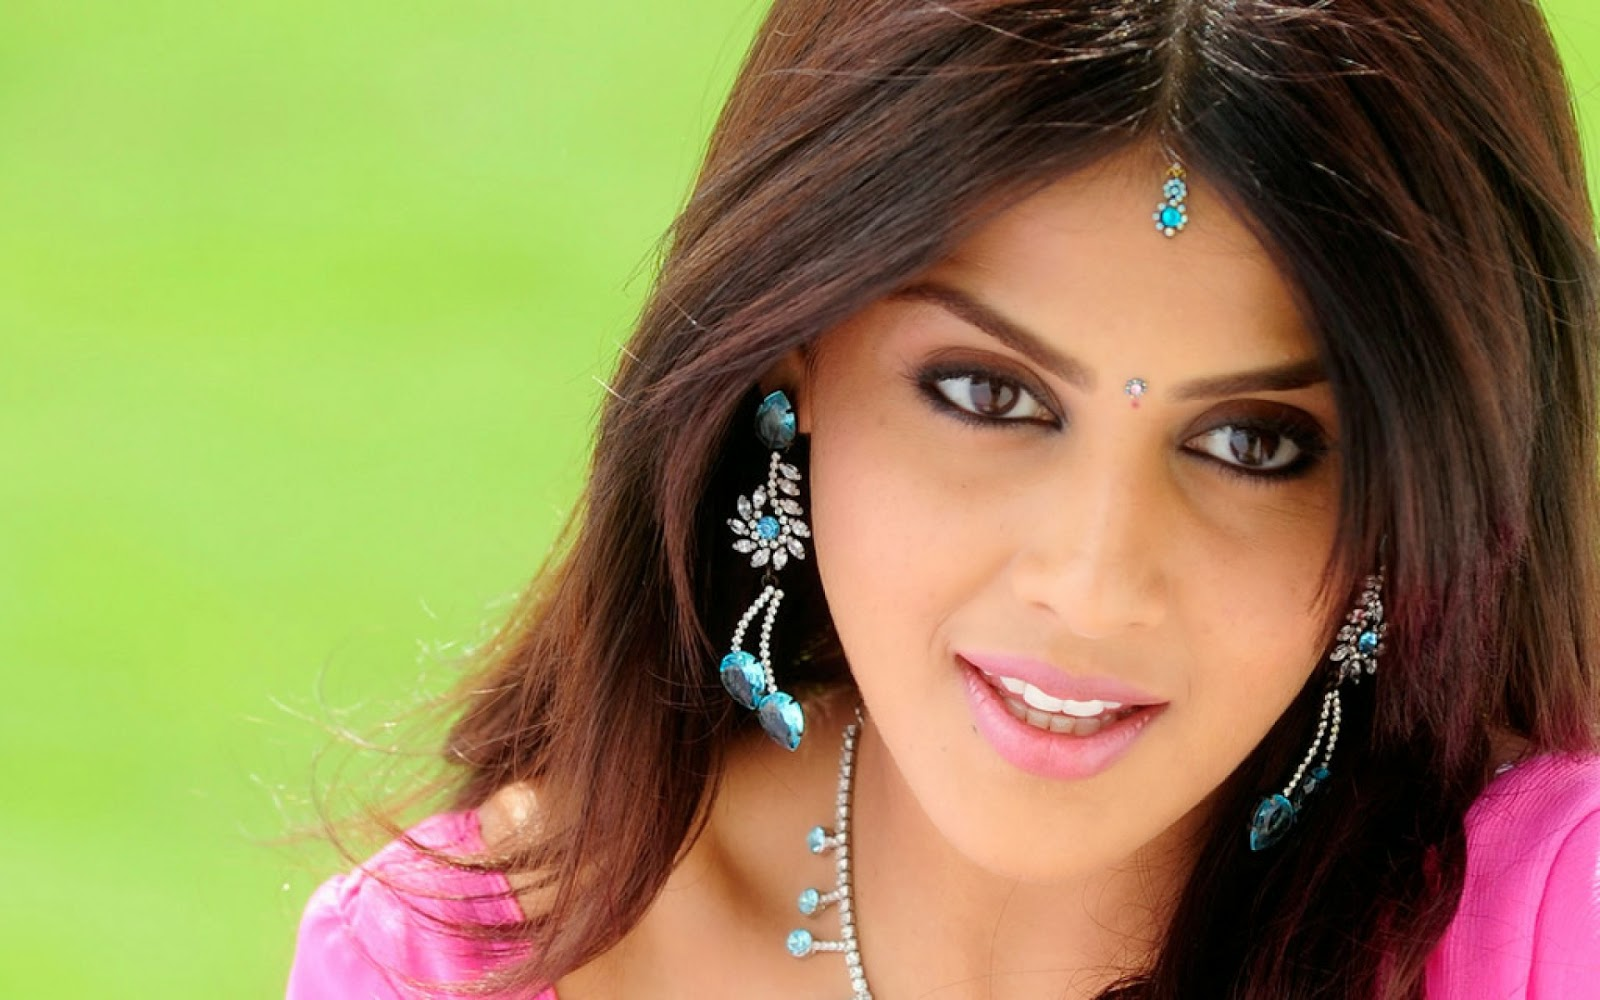 http://moviepicturess.blogspot.in/2014/09/genelia-dsouza.html